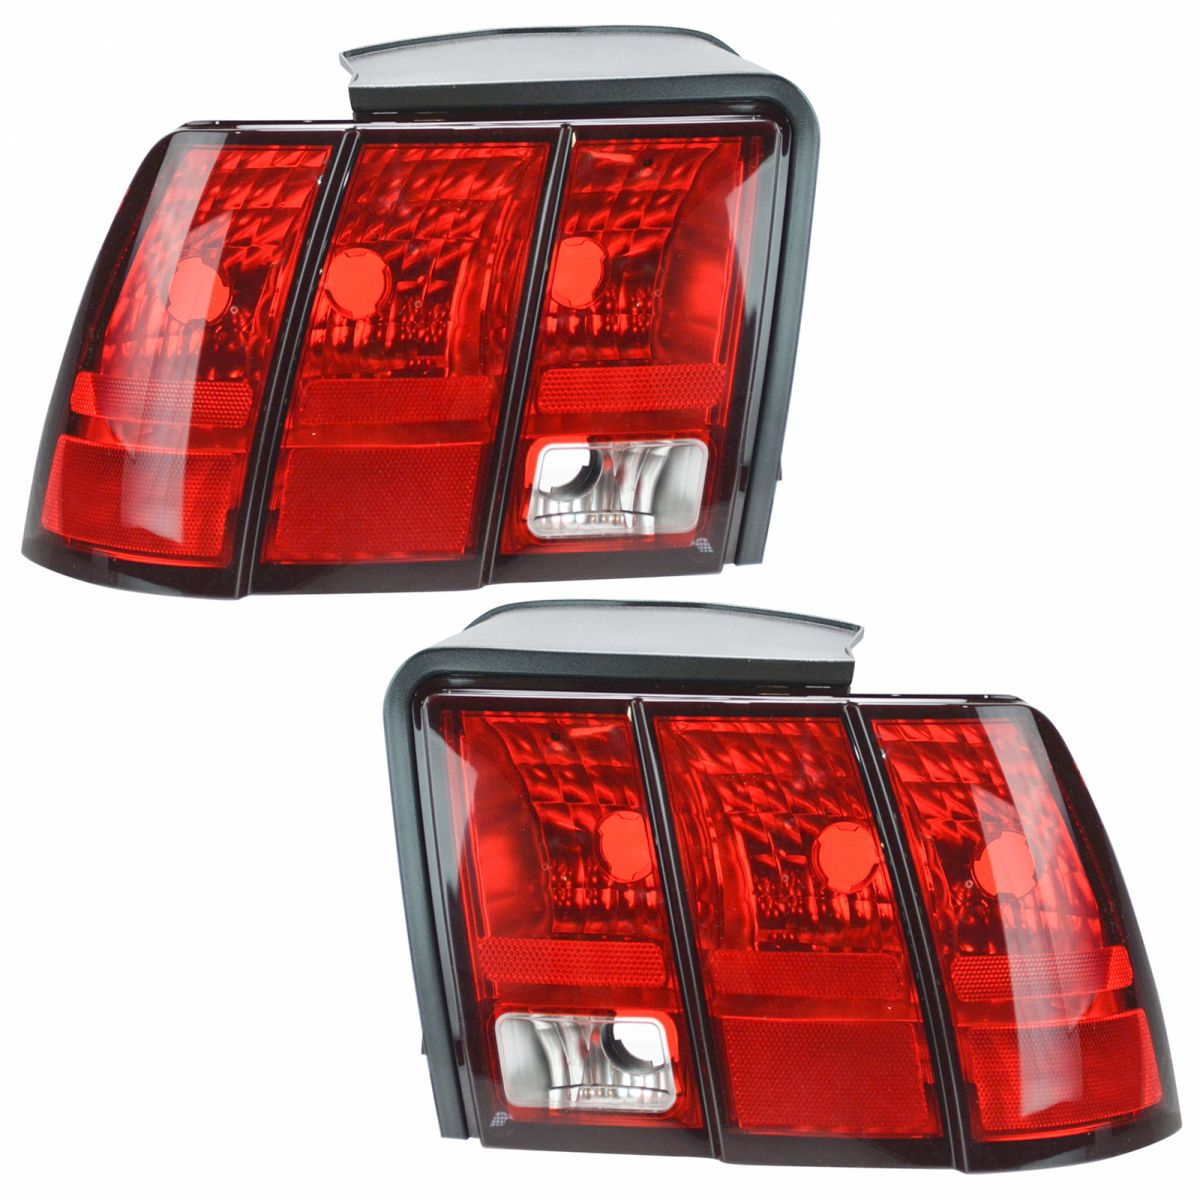 Taillight Taillamp Rear Brake Light Driver Side Left LH for 99-04 Mustang